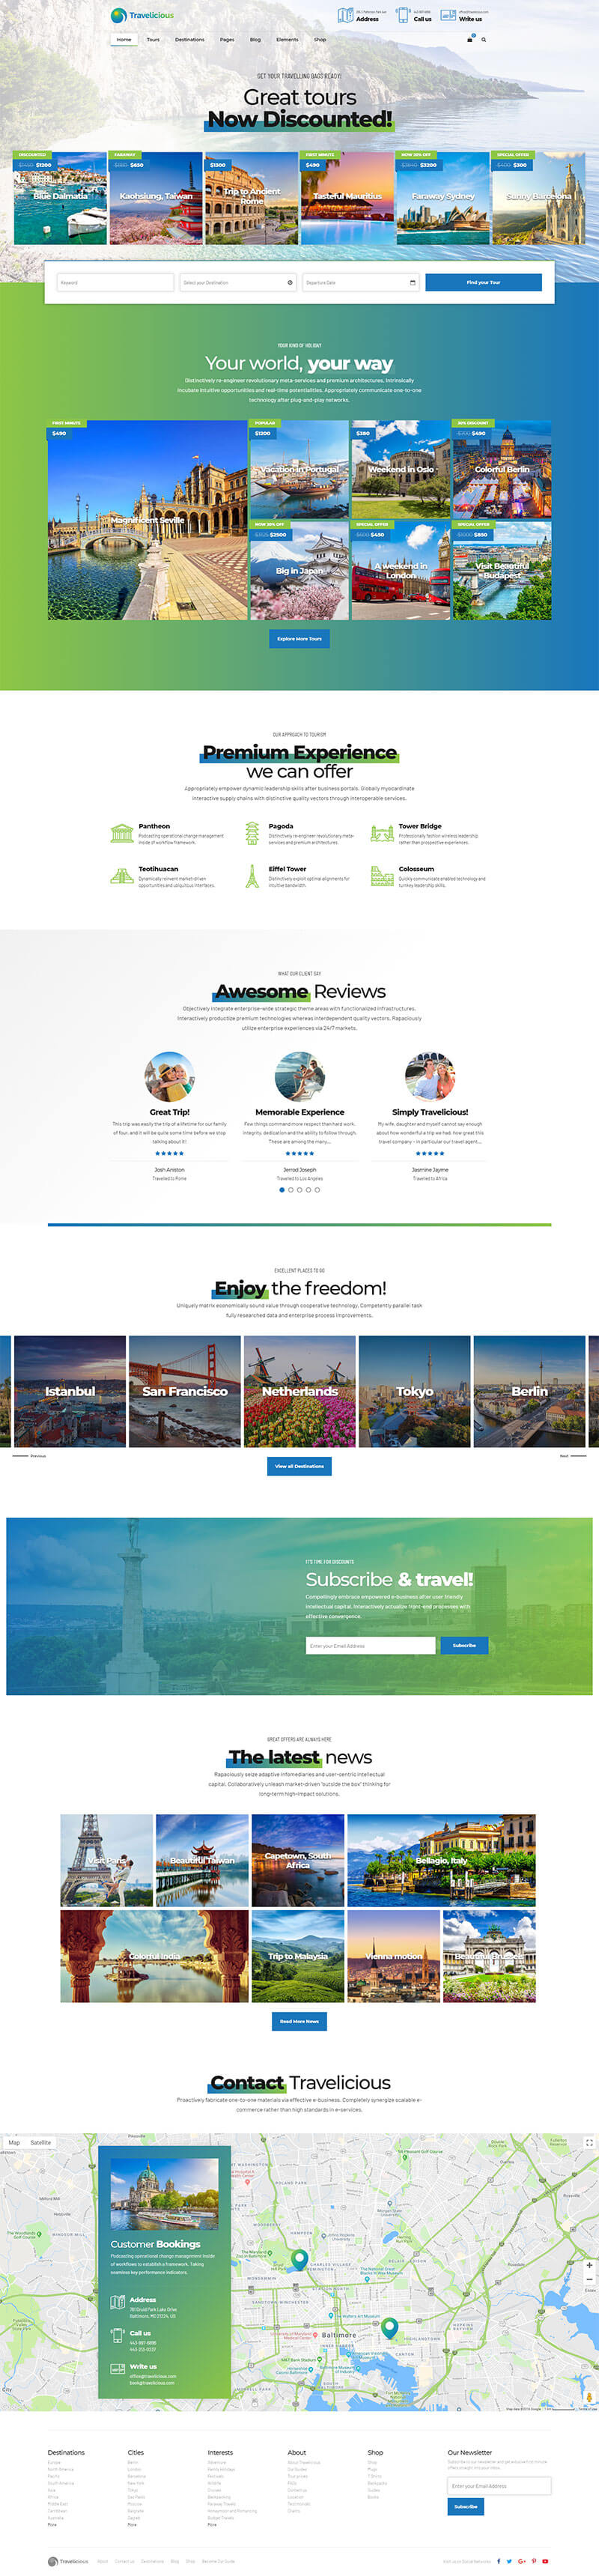 https://travelicious.bold-themes.com/wp-content/uploads/2018/10/demo-multiple-tours.jpg